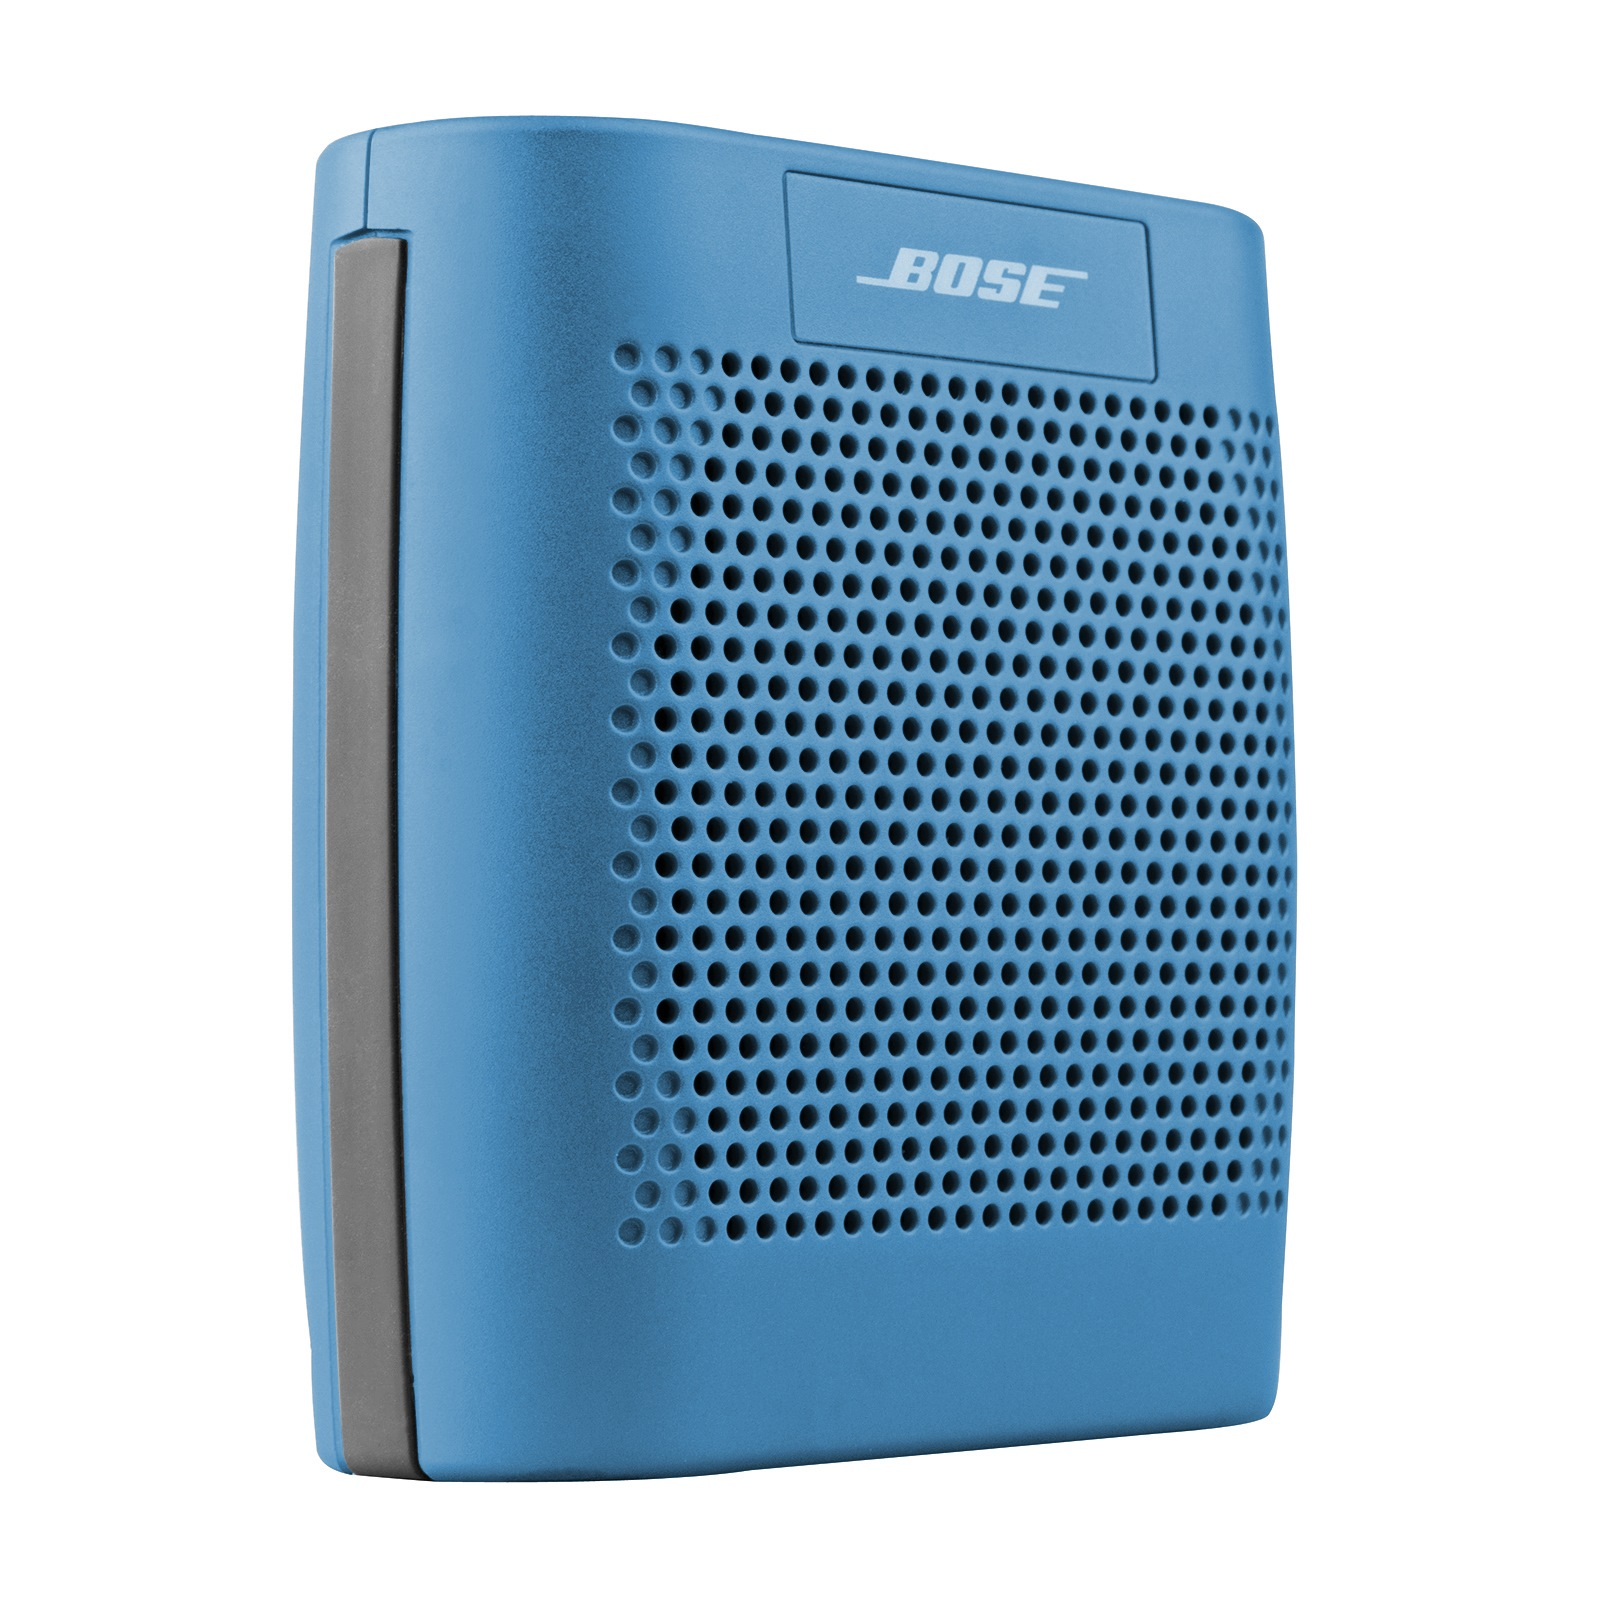 Bose SoundLink Bluetooth Wireless Speaker Nylon (Blue) BOS-SOUNDLINKCOLOR-BL-B2